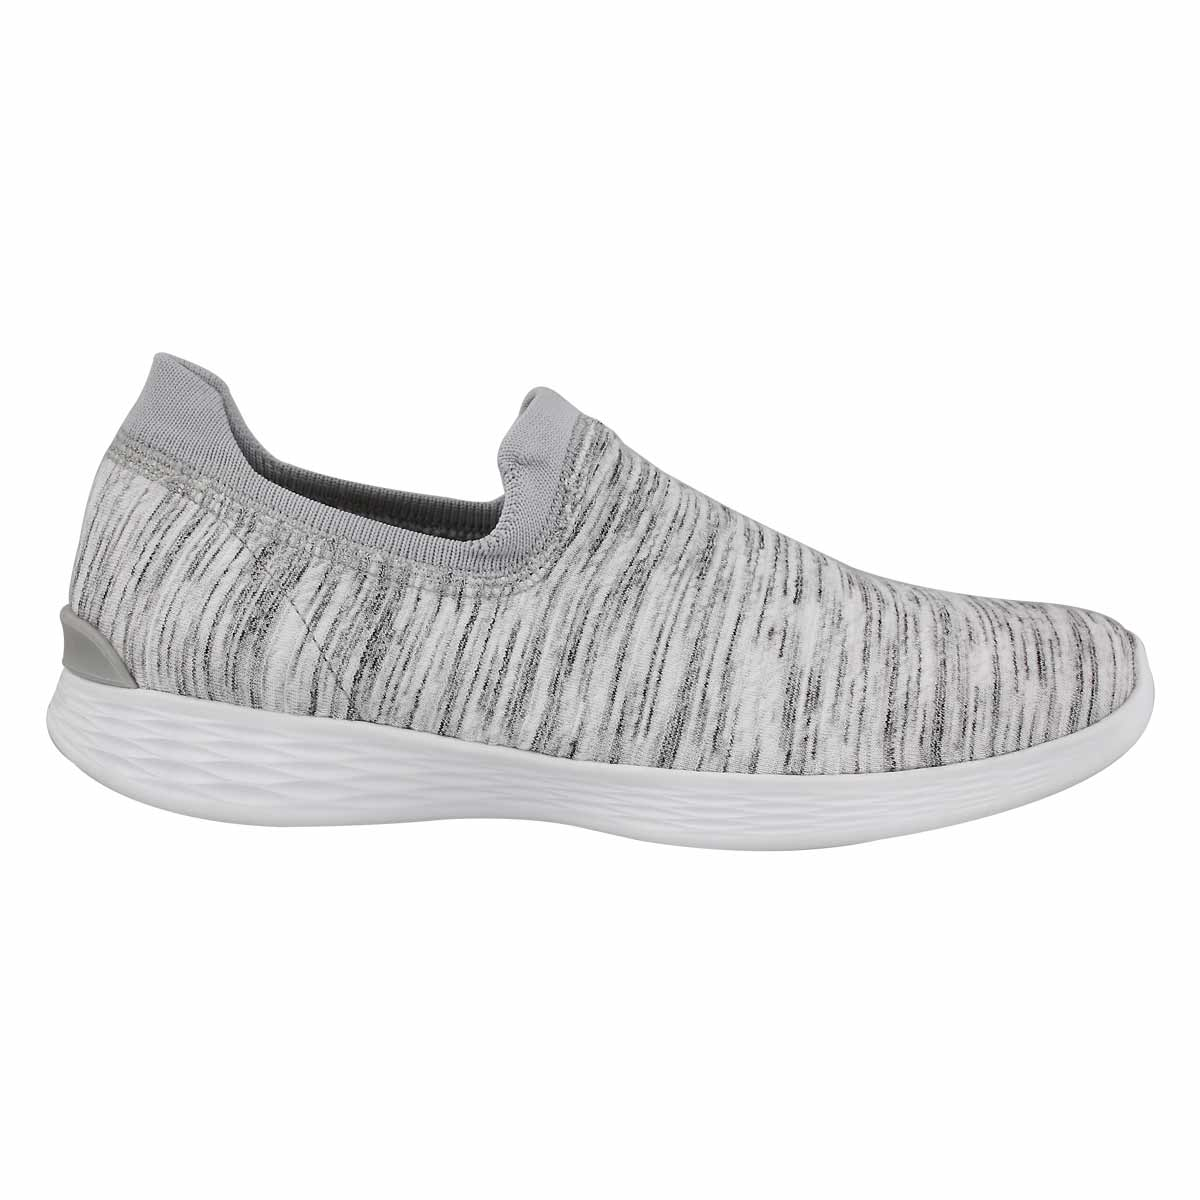 Lds You Define wht/gry slip on shoe